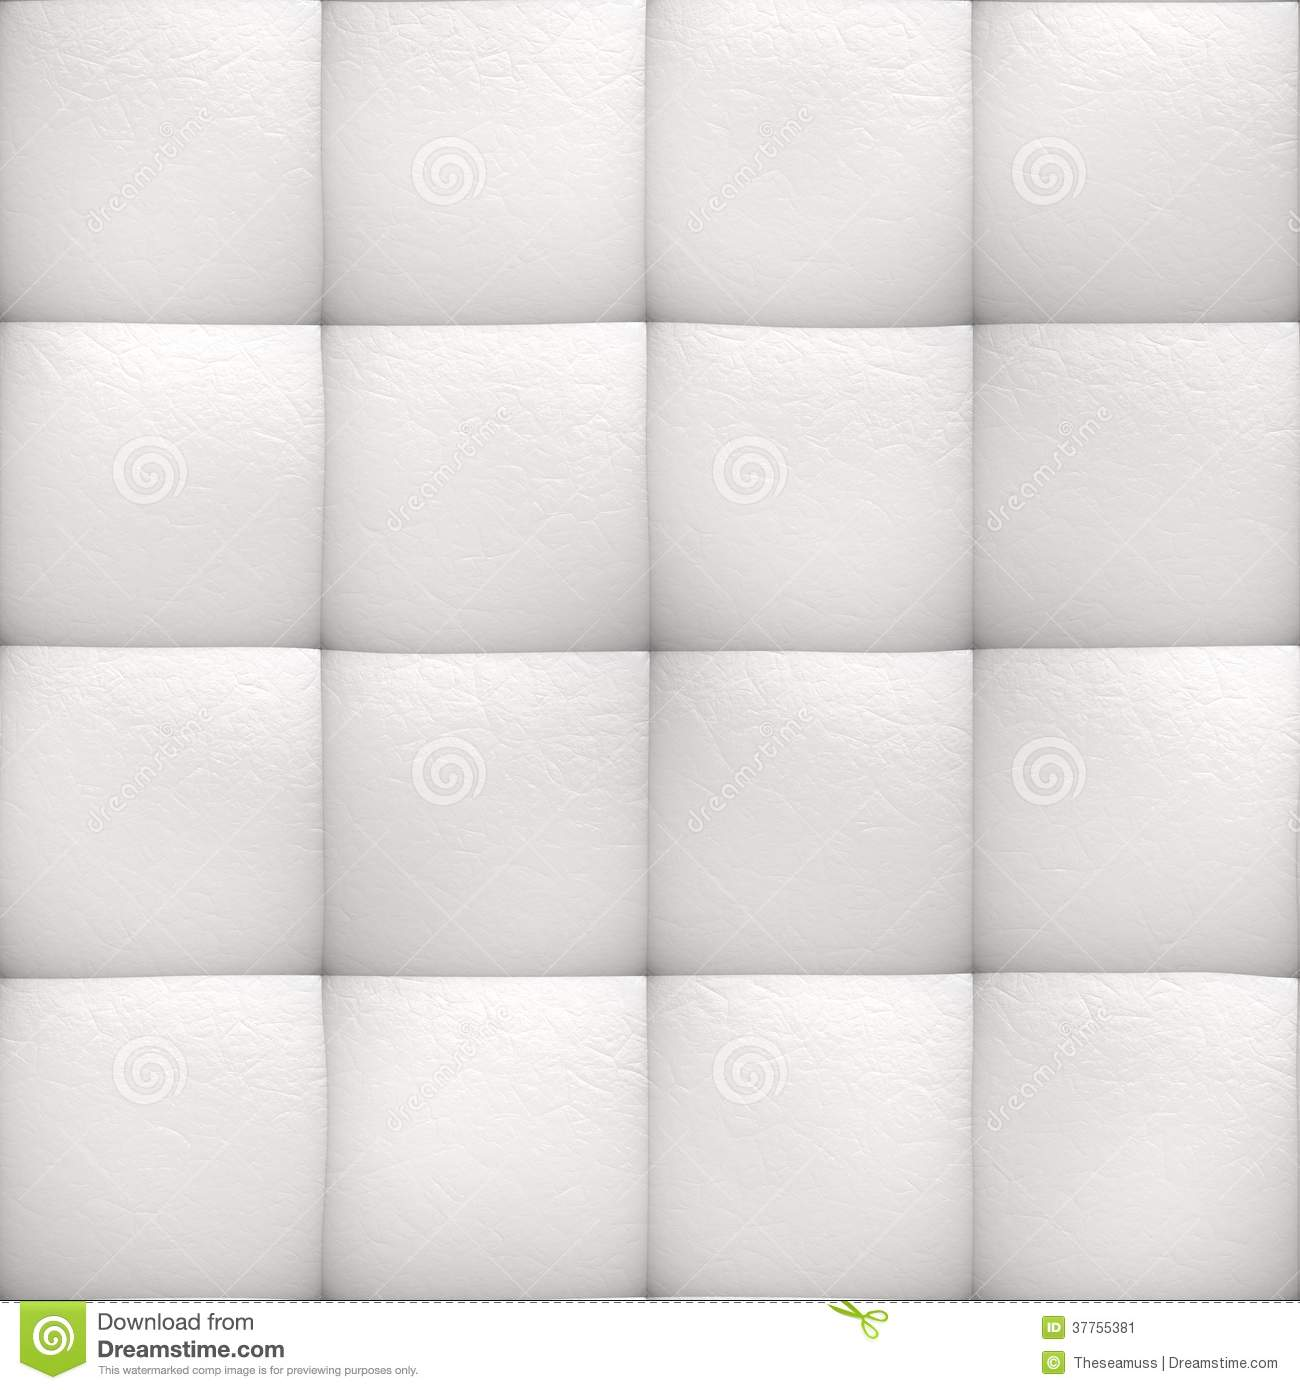 Seamless Abstract White Texture Stock Image - Image: 37755381